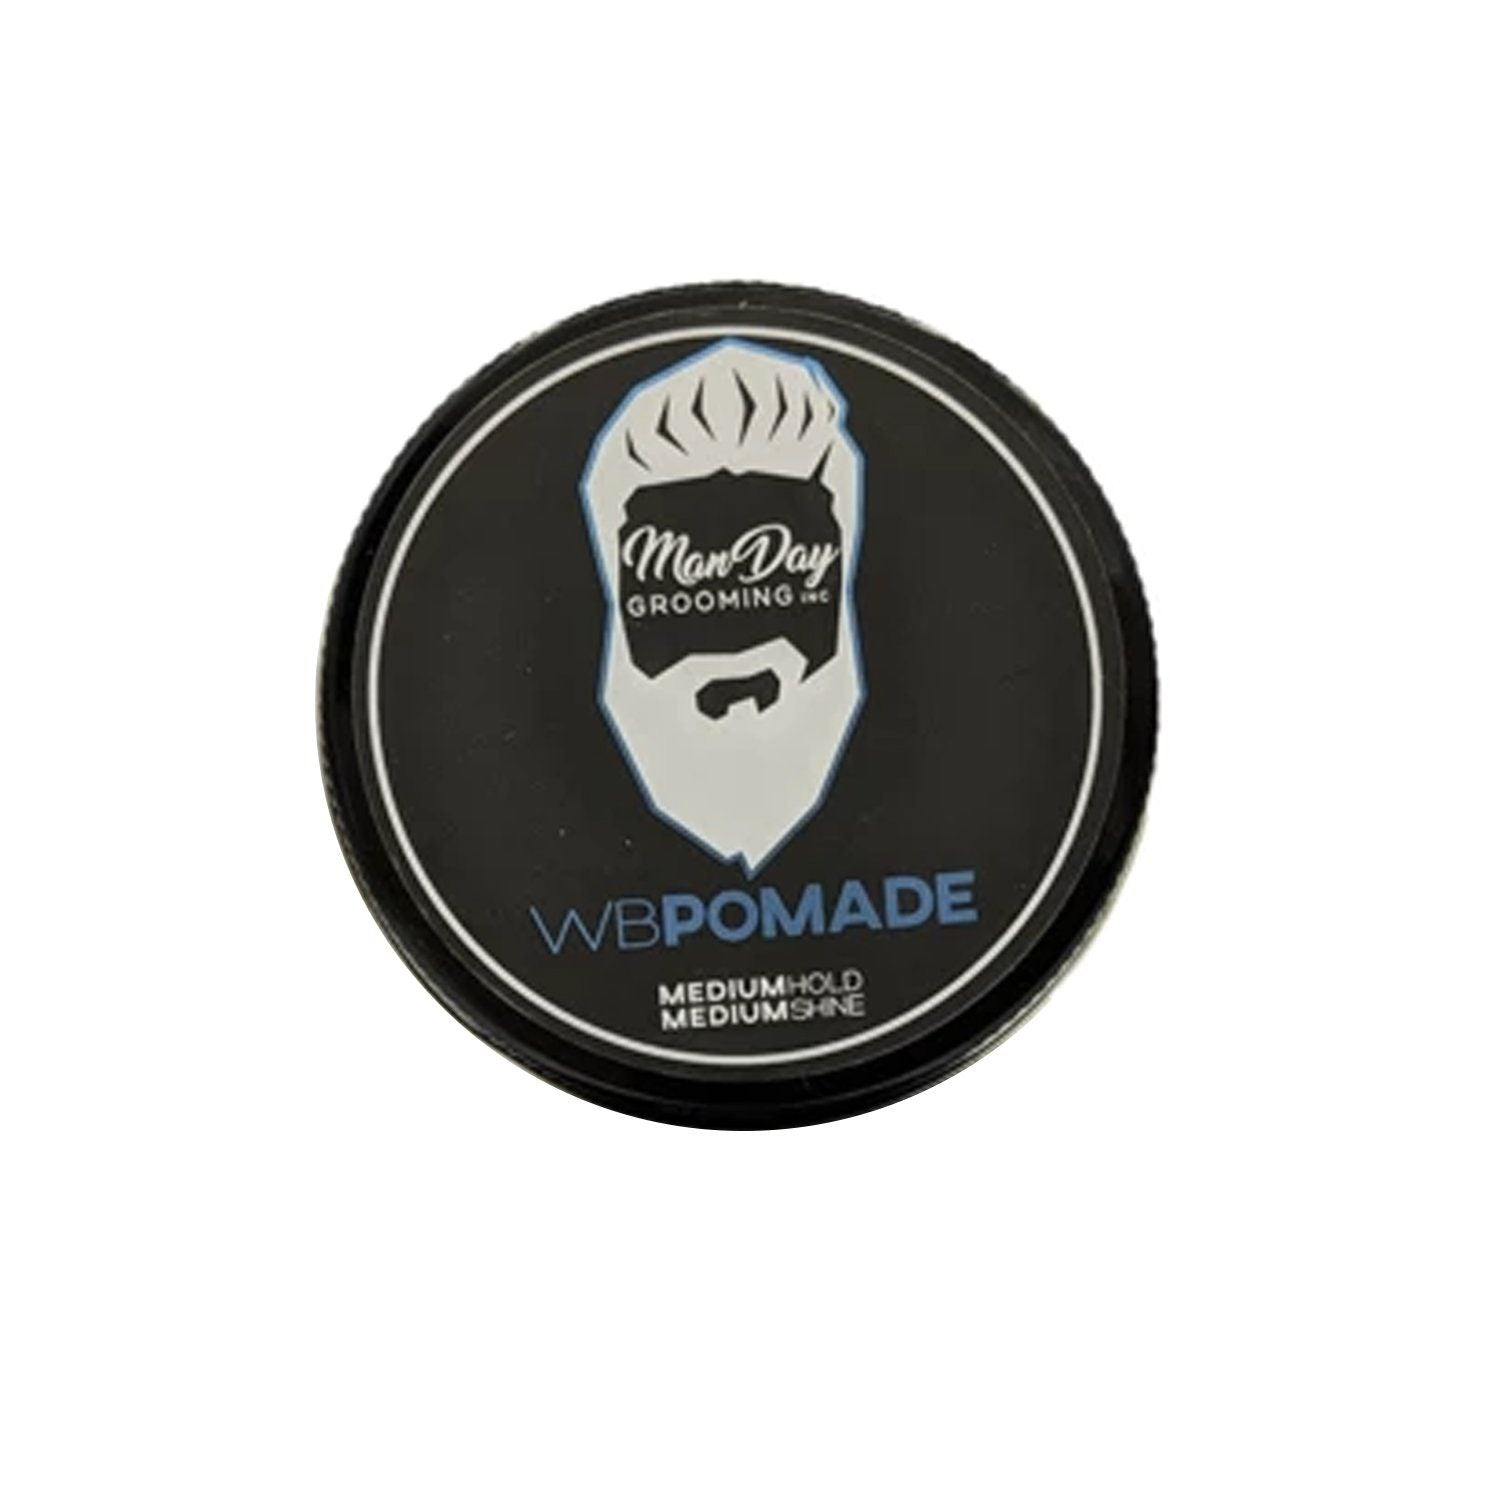 Water Based Pomade 2oz Subscription Items Manday Subscription